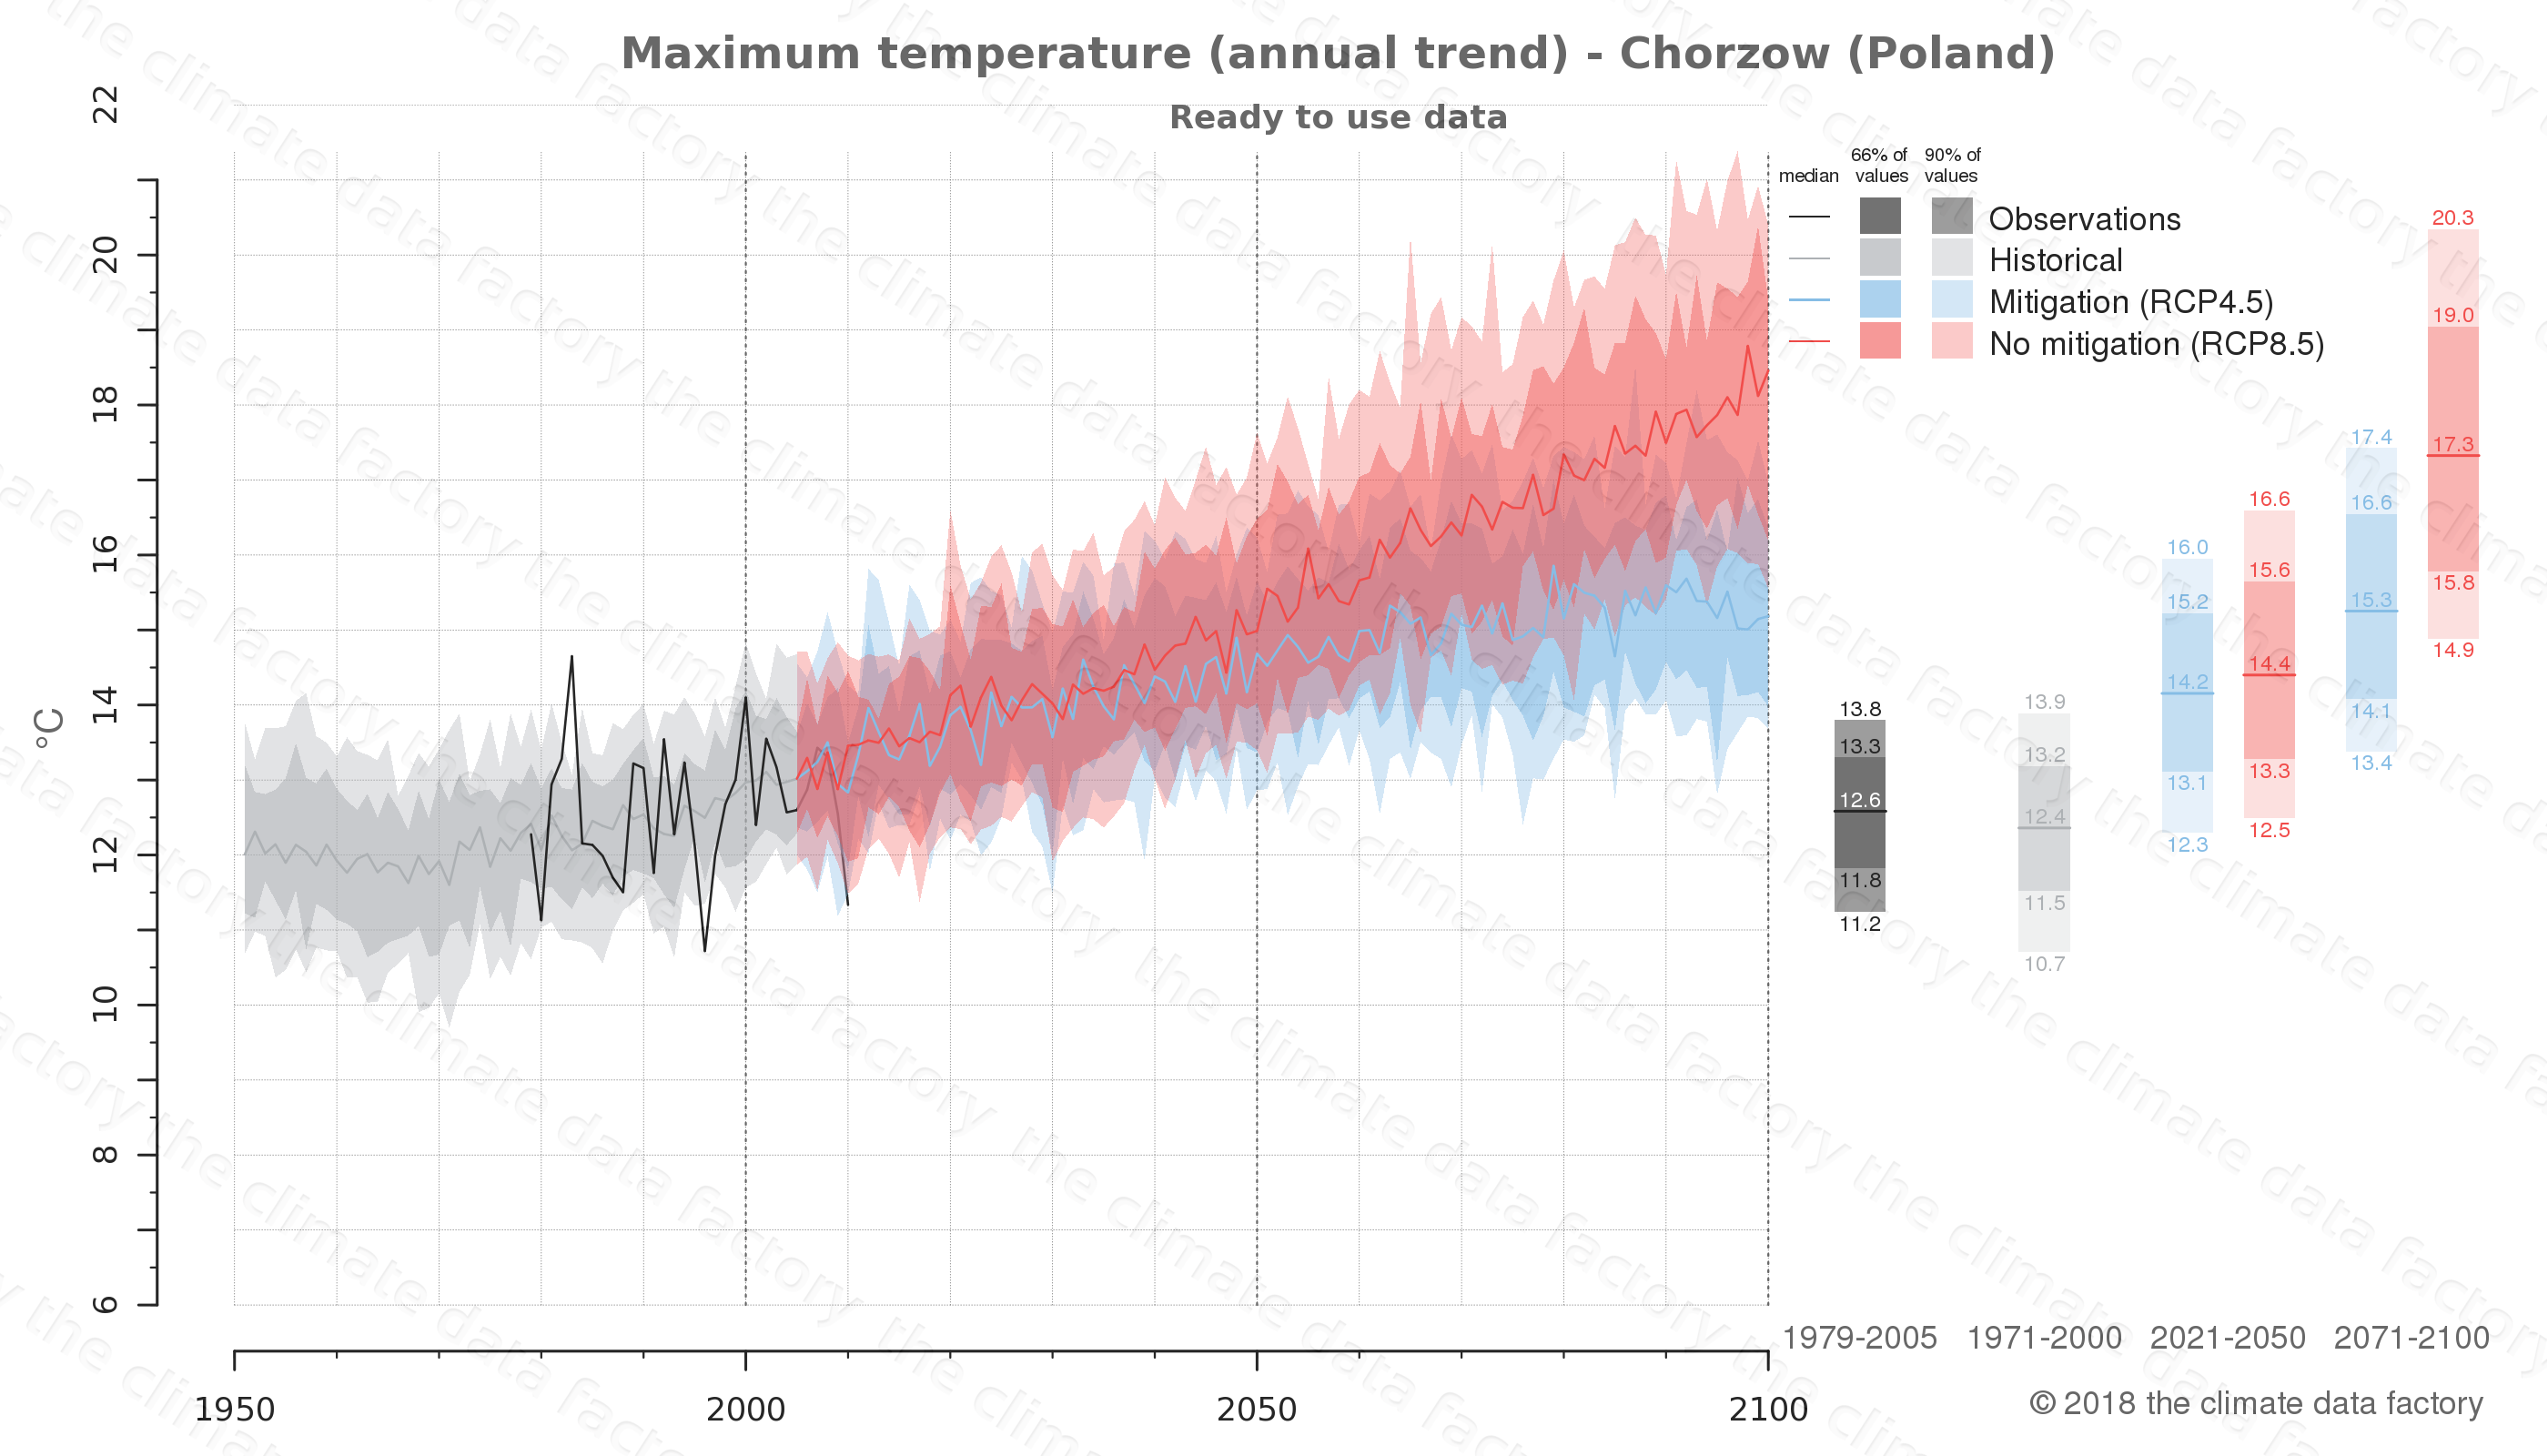 climate change data policy adaptation climate graph city data maximum-temperature chorzow poland